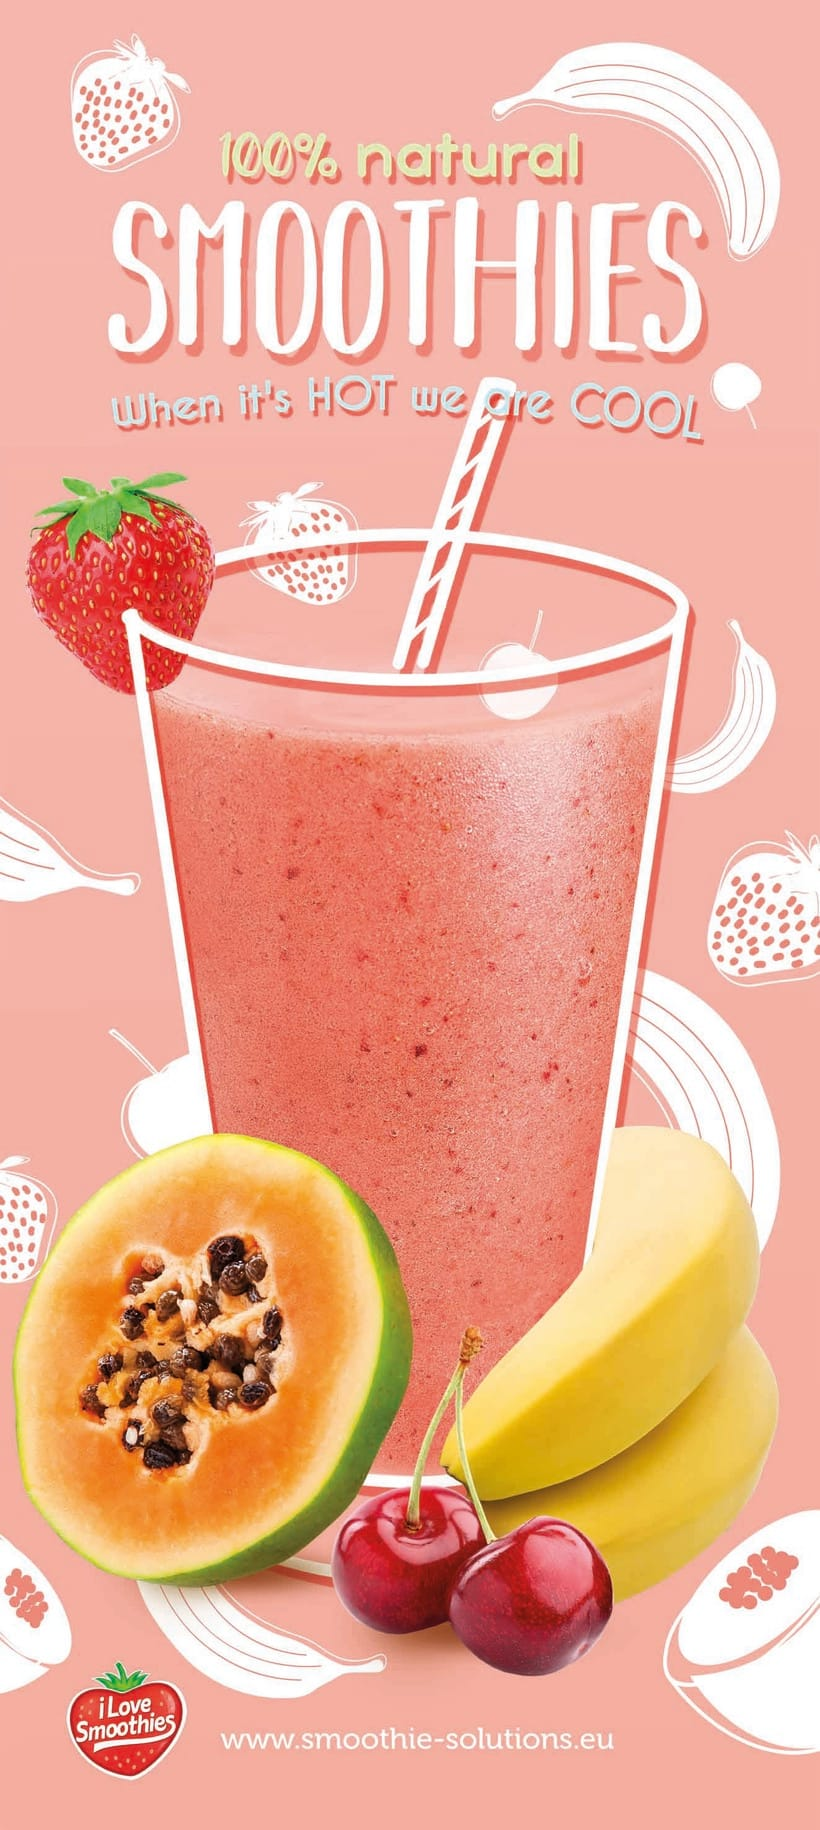 Smoothie Solutions -1